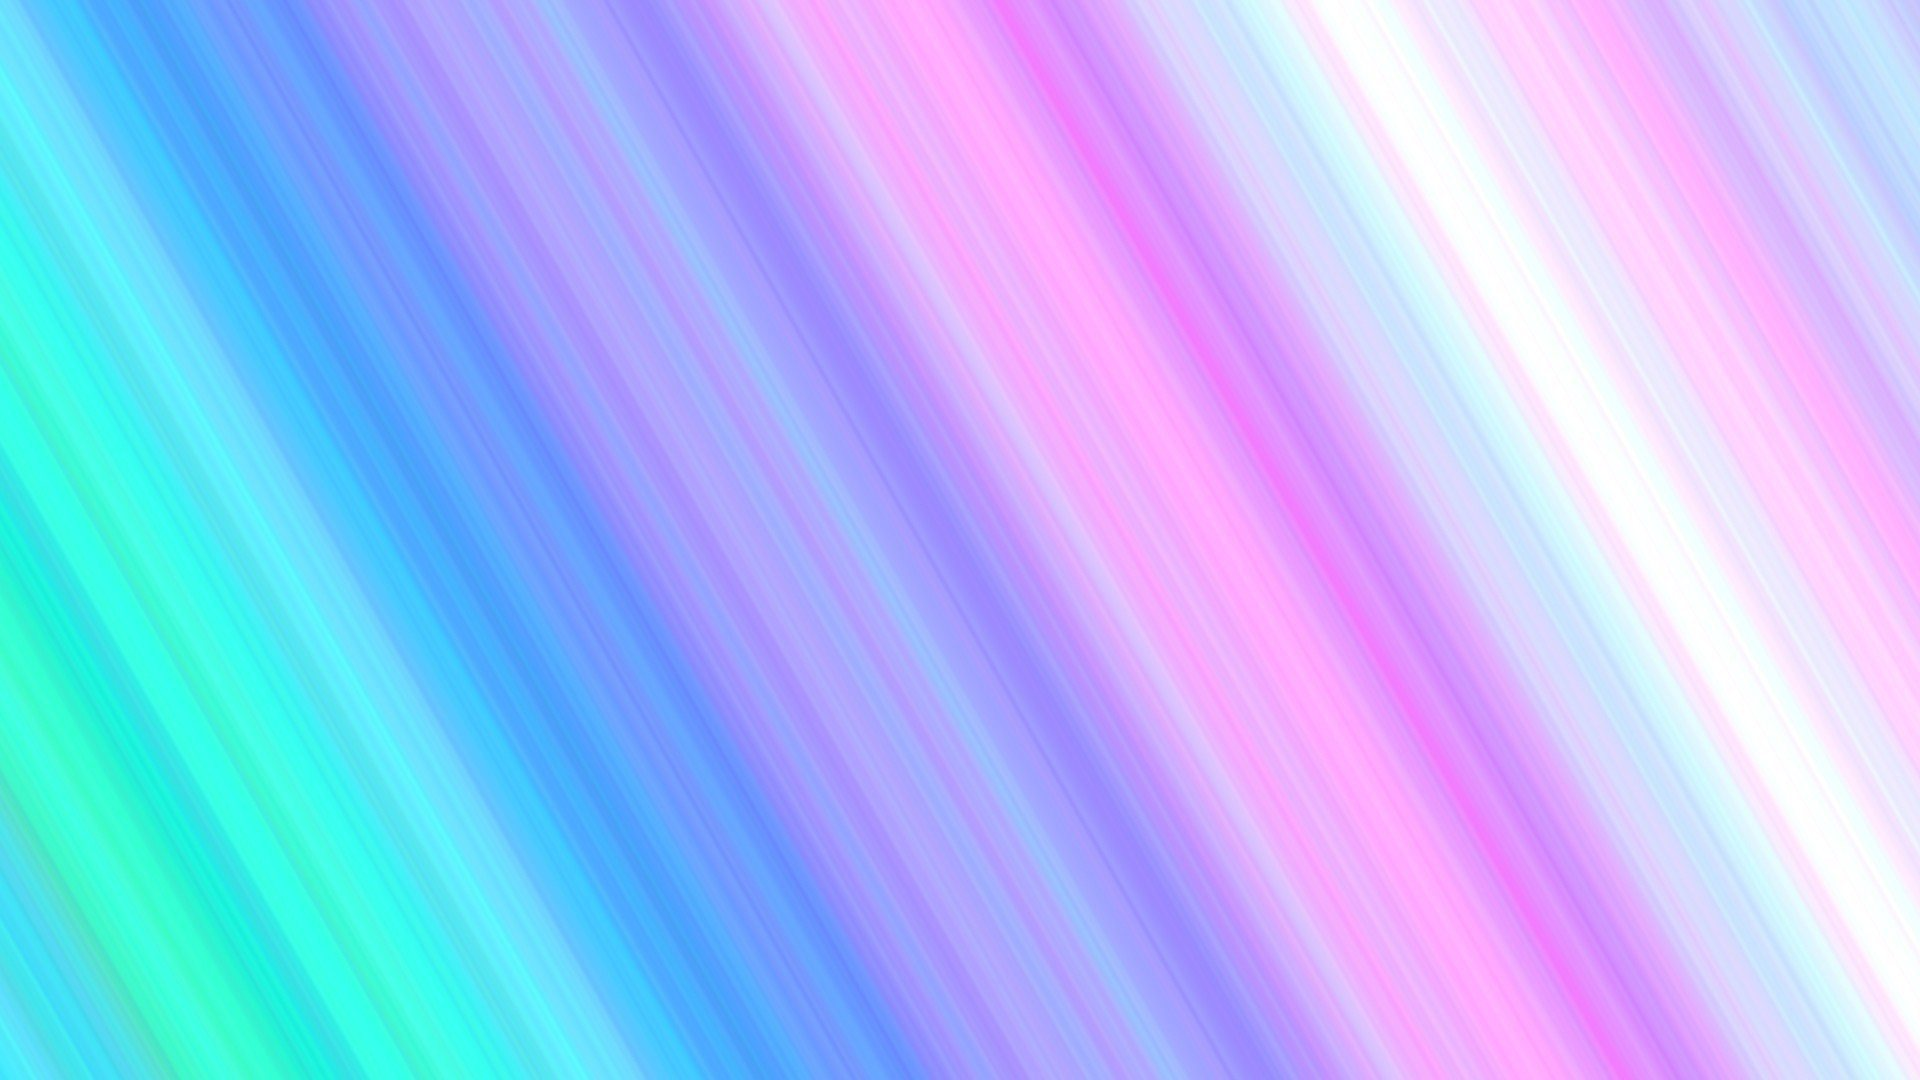 72+ Pink Purple And Blue Backgrounds on WallpaperSafari